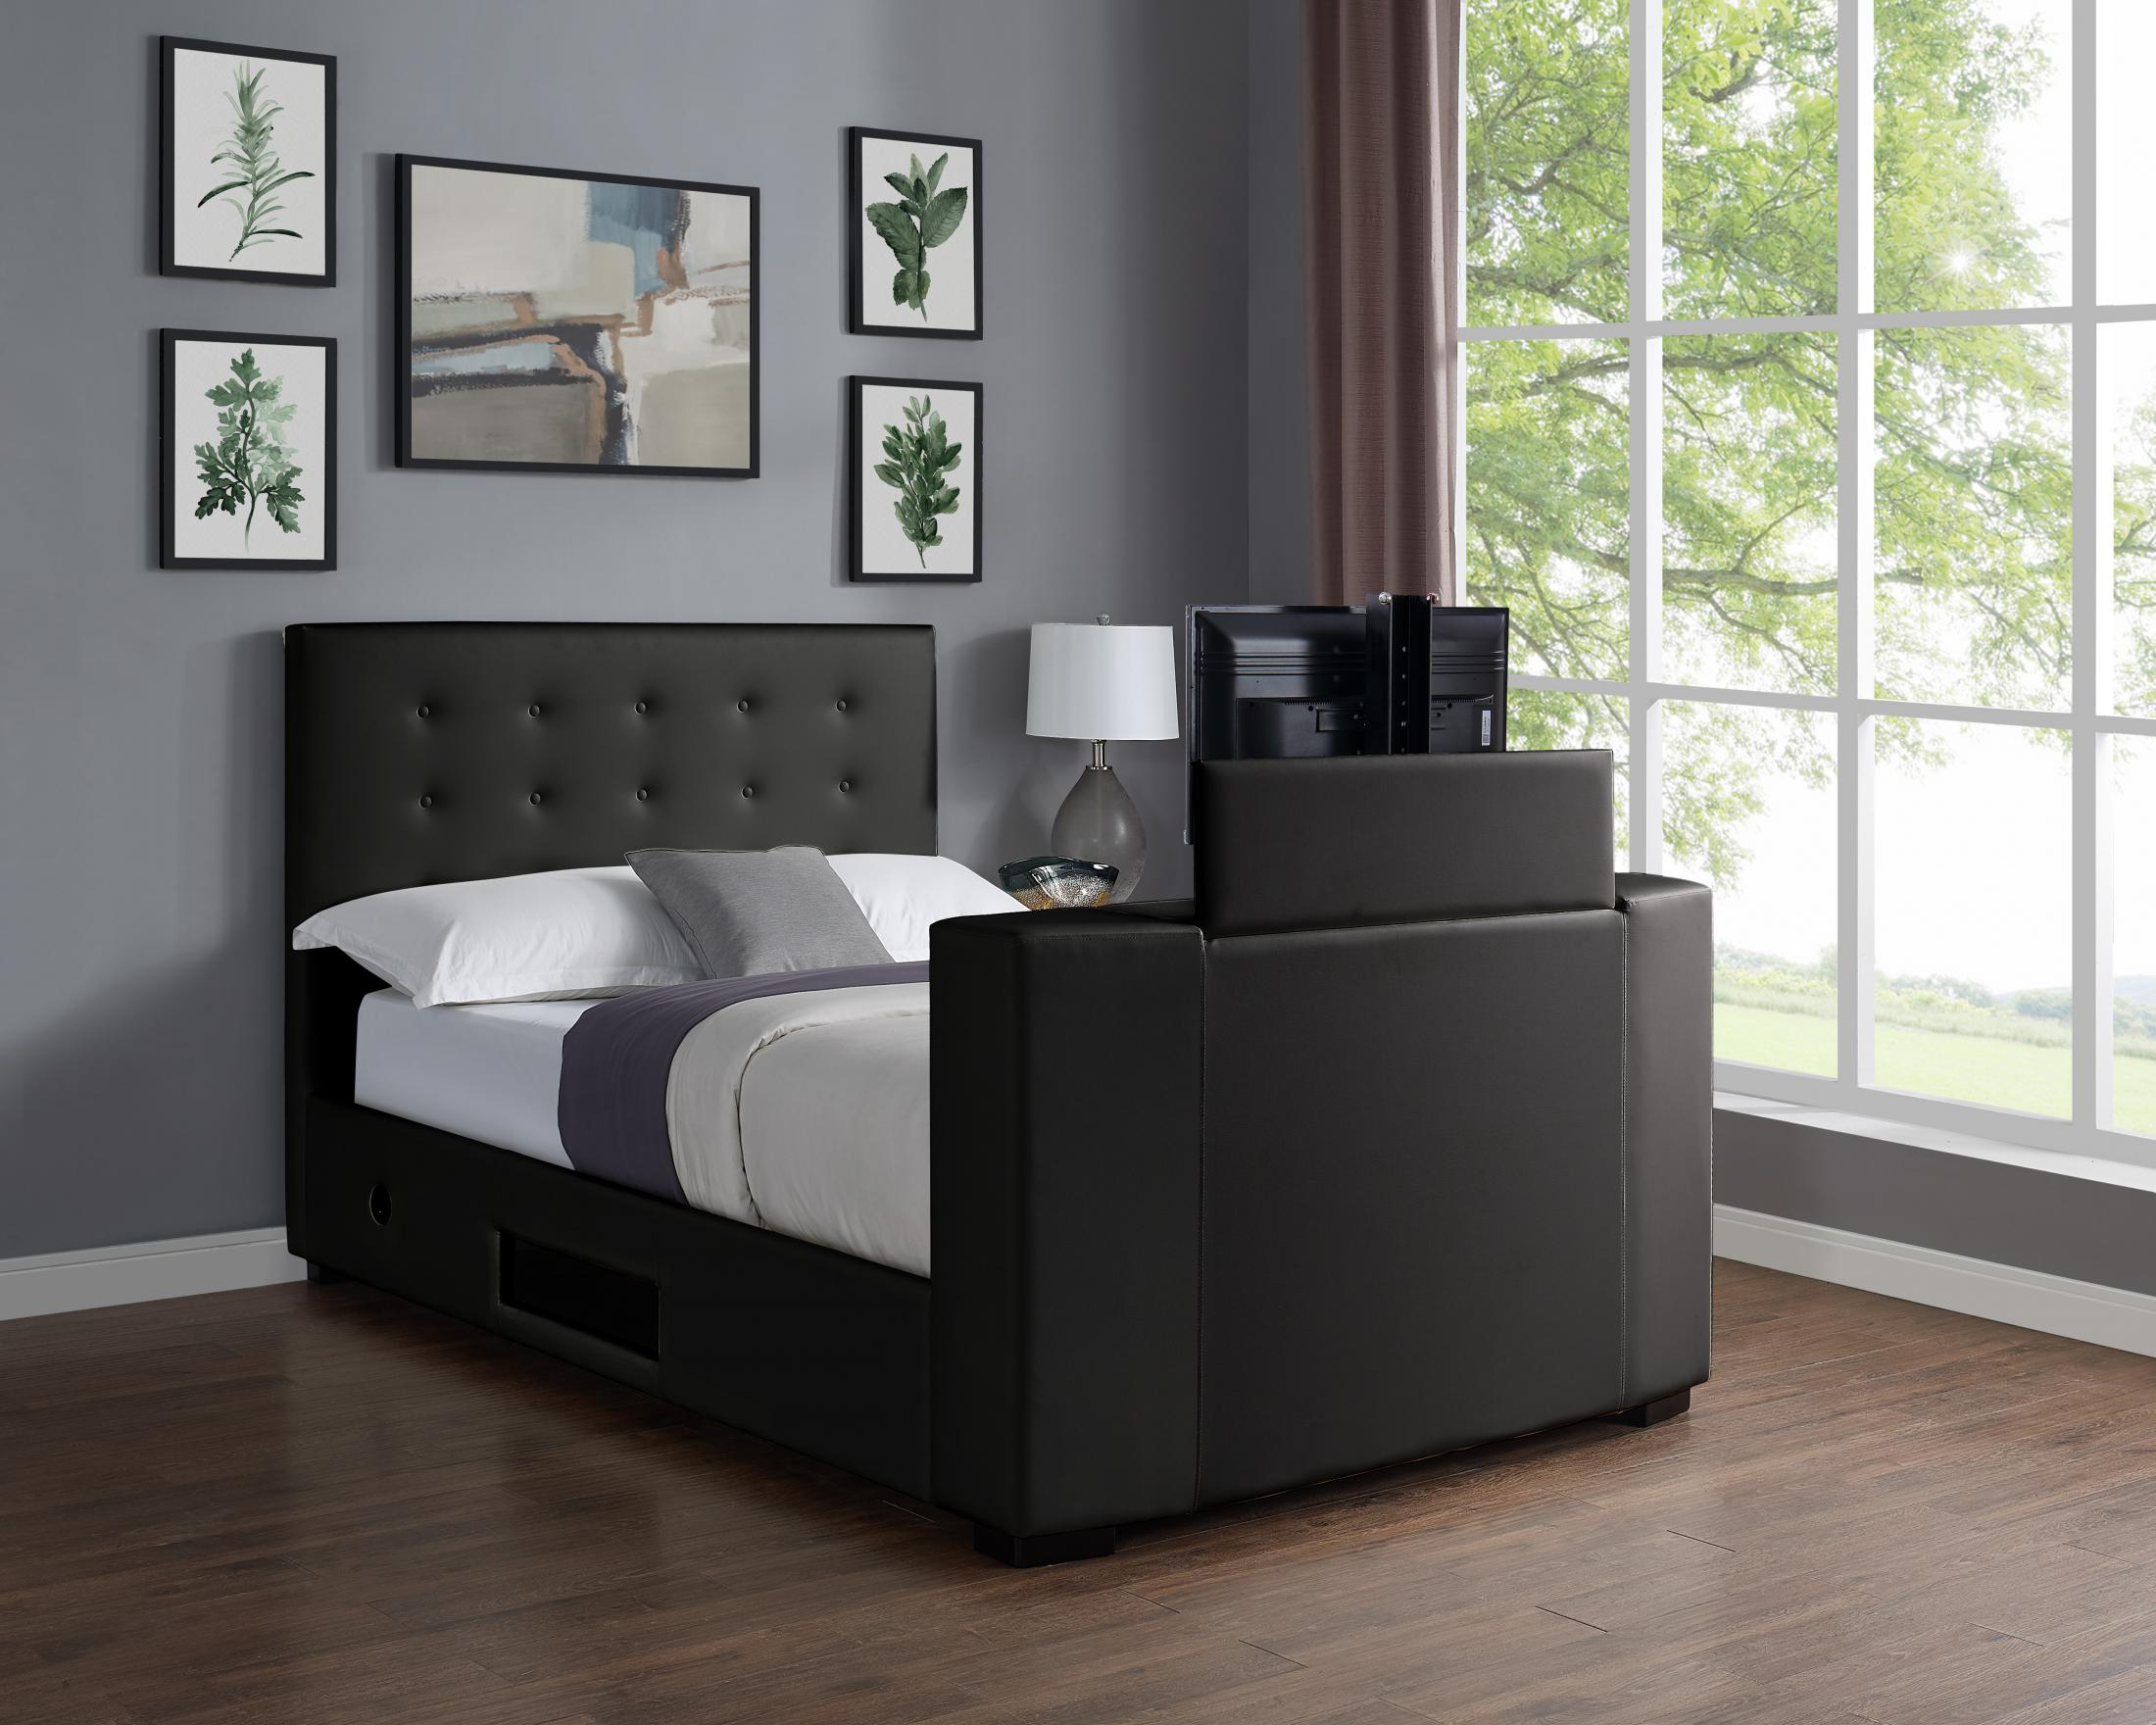 King Size Tv Bed Viewing Marbella Tv Bed Pvc King Size Bed Black